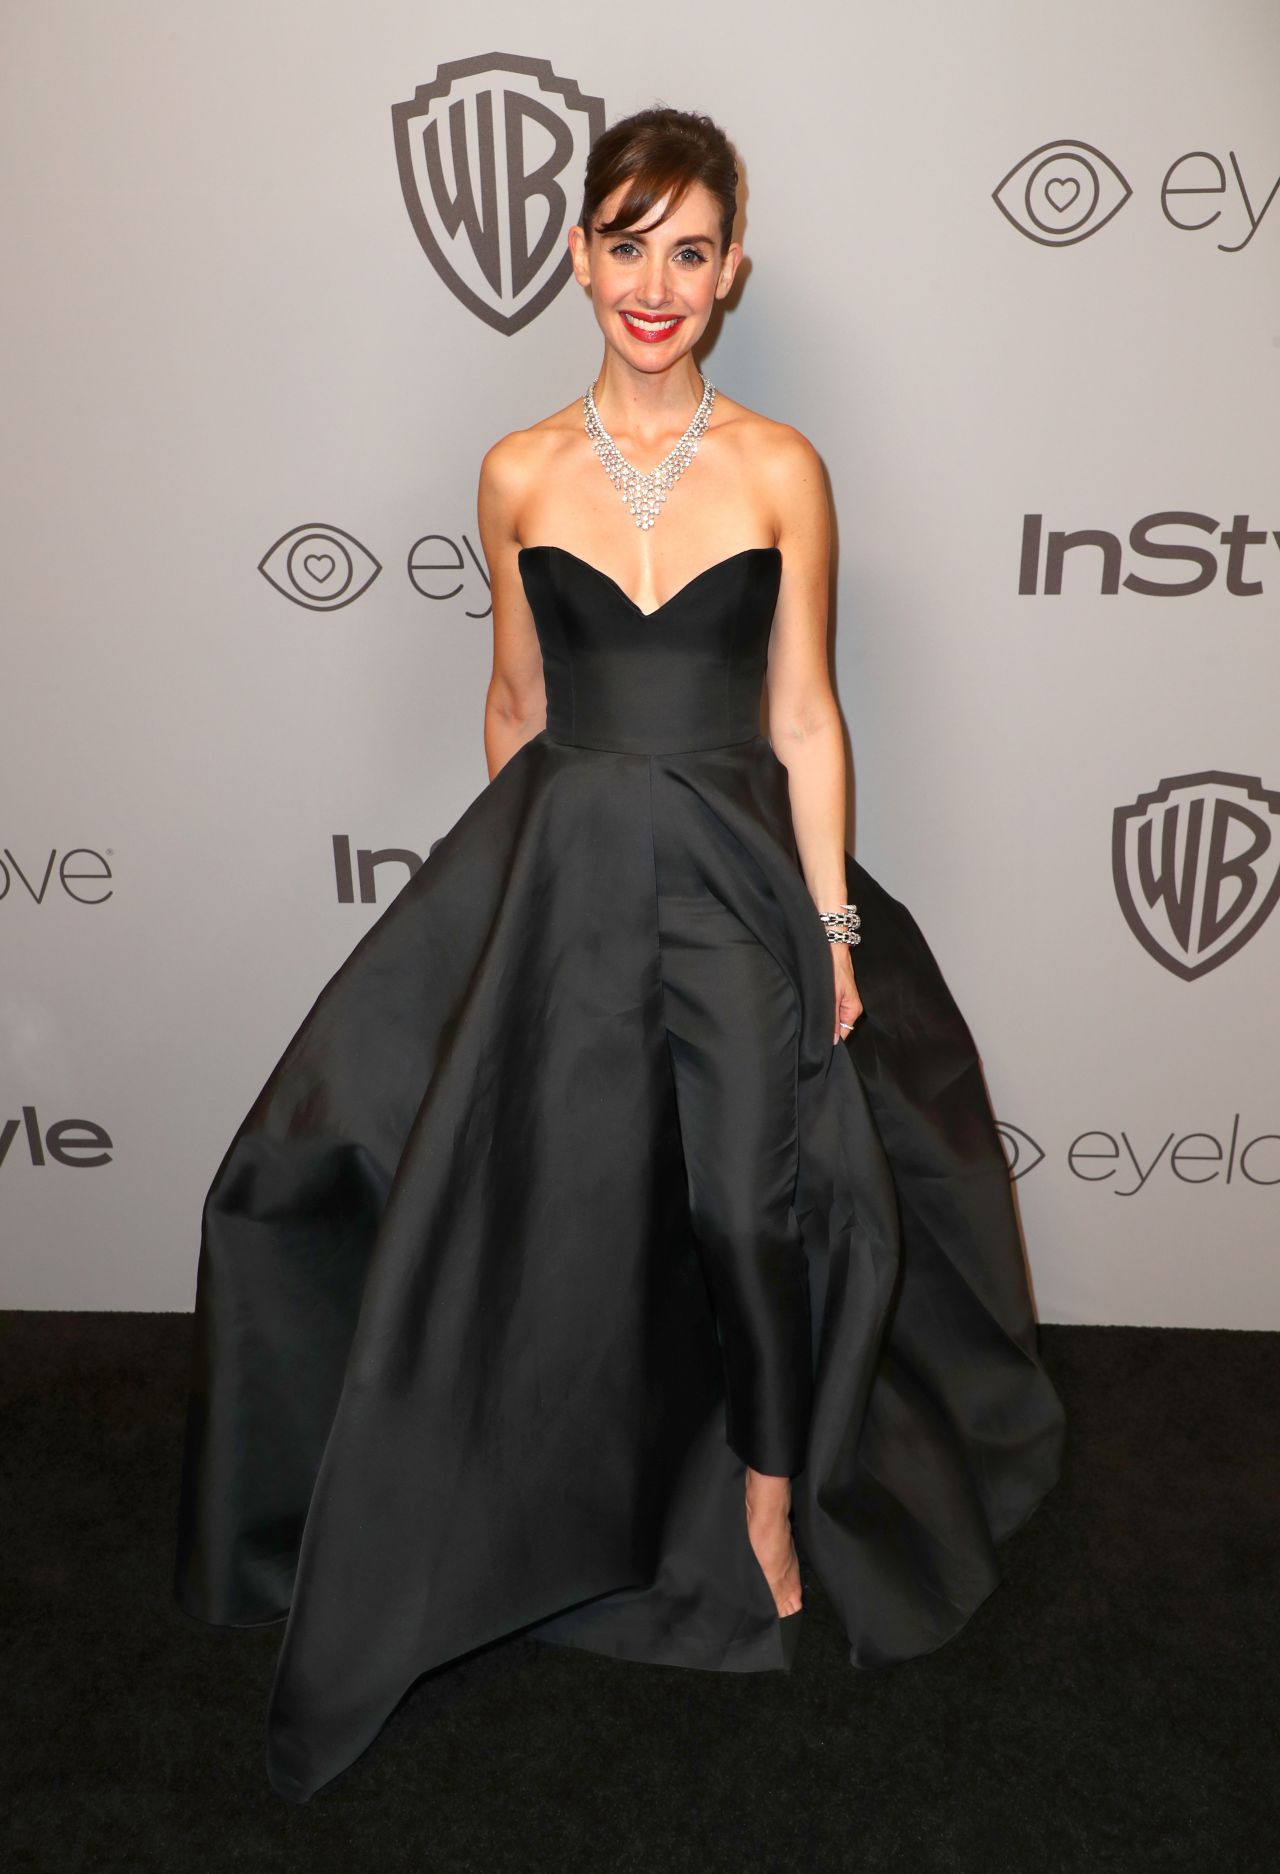 http://celebmafia.com/wp-content/uploads/2018/01/alison-brie-instyle-and-warner-bros-golden-globes-2018-after-party-1.jpg